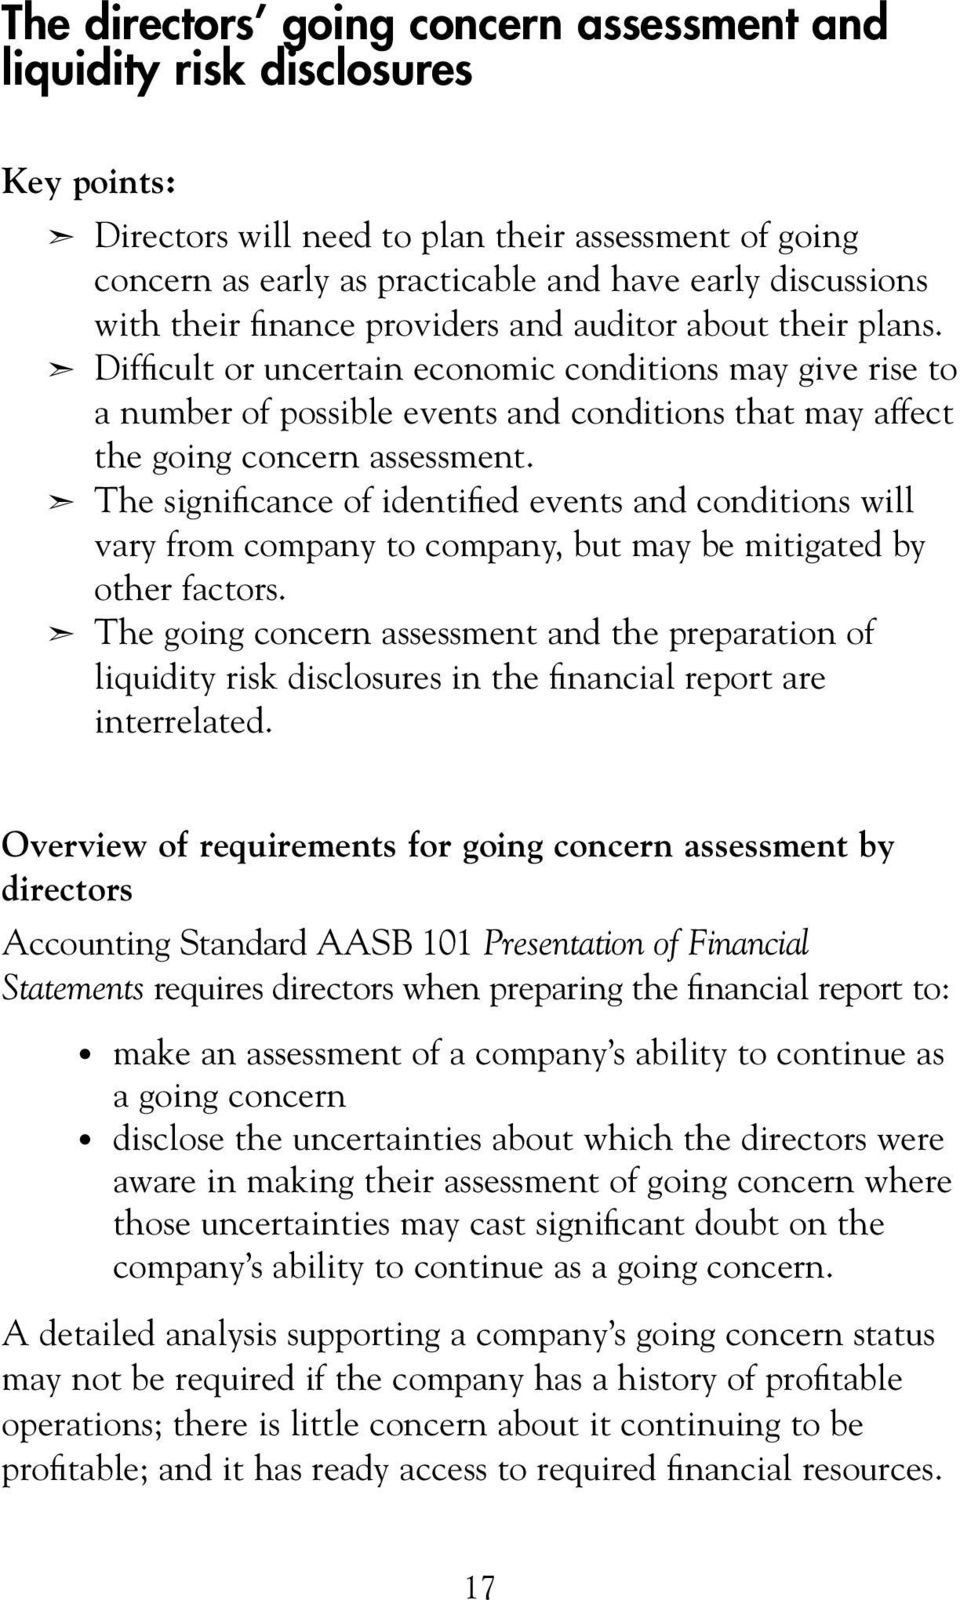 Difficult or uncertain economic conditions may give rise to a number of possible events and conditions that may affect the going concern assessment.